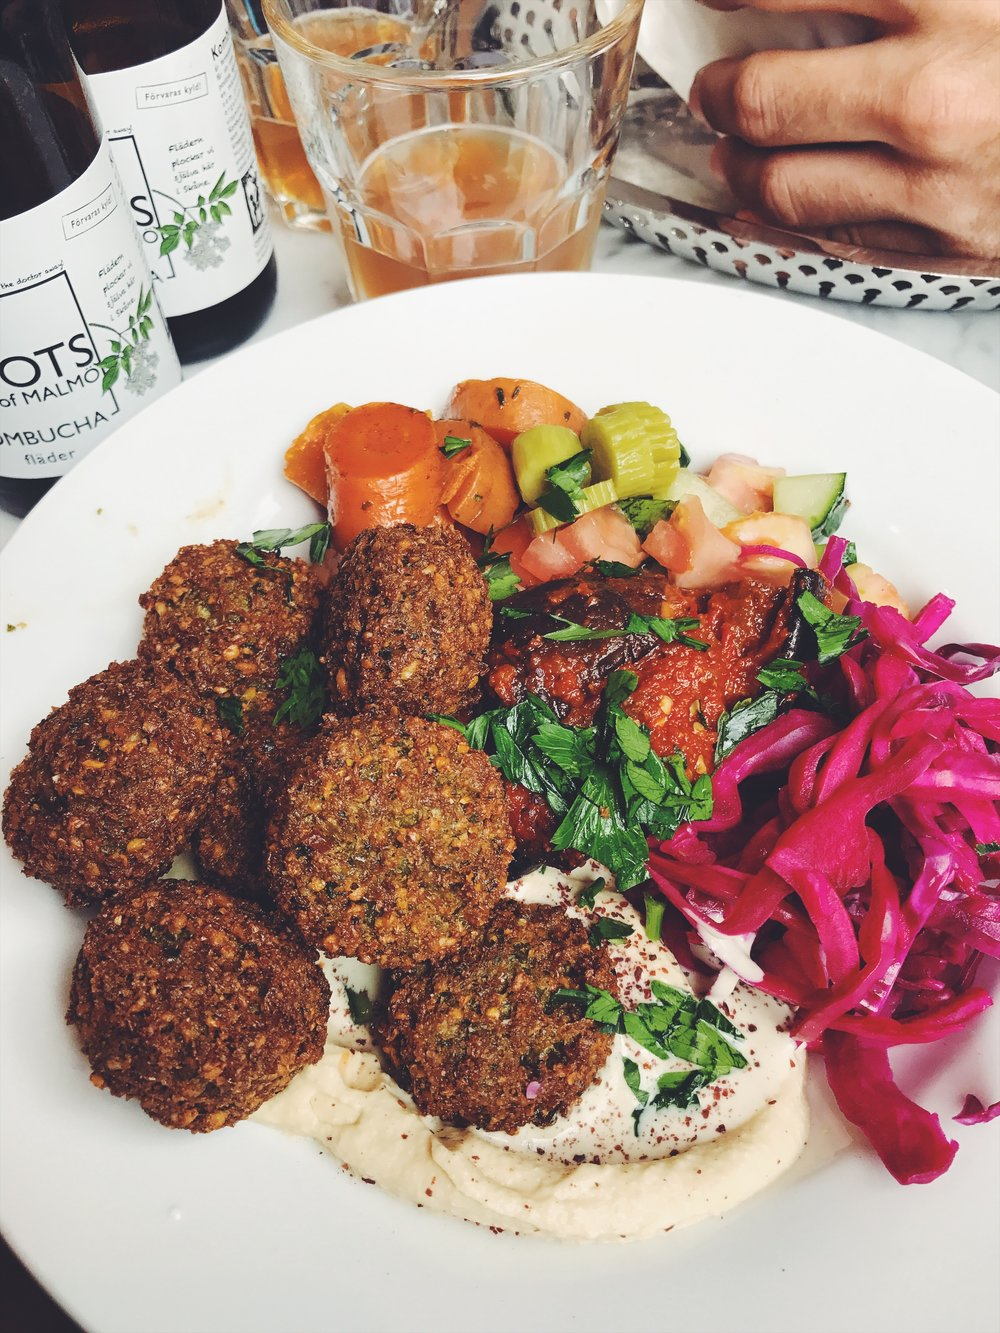 my plate of falafel at Falafelbaren